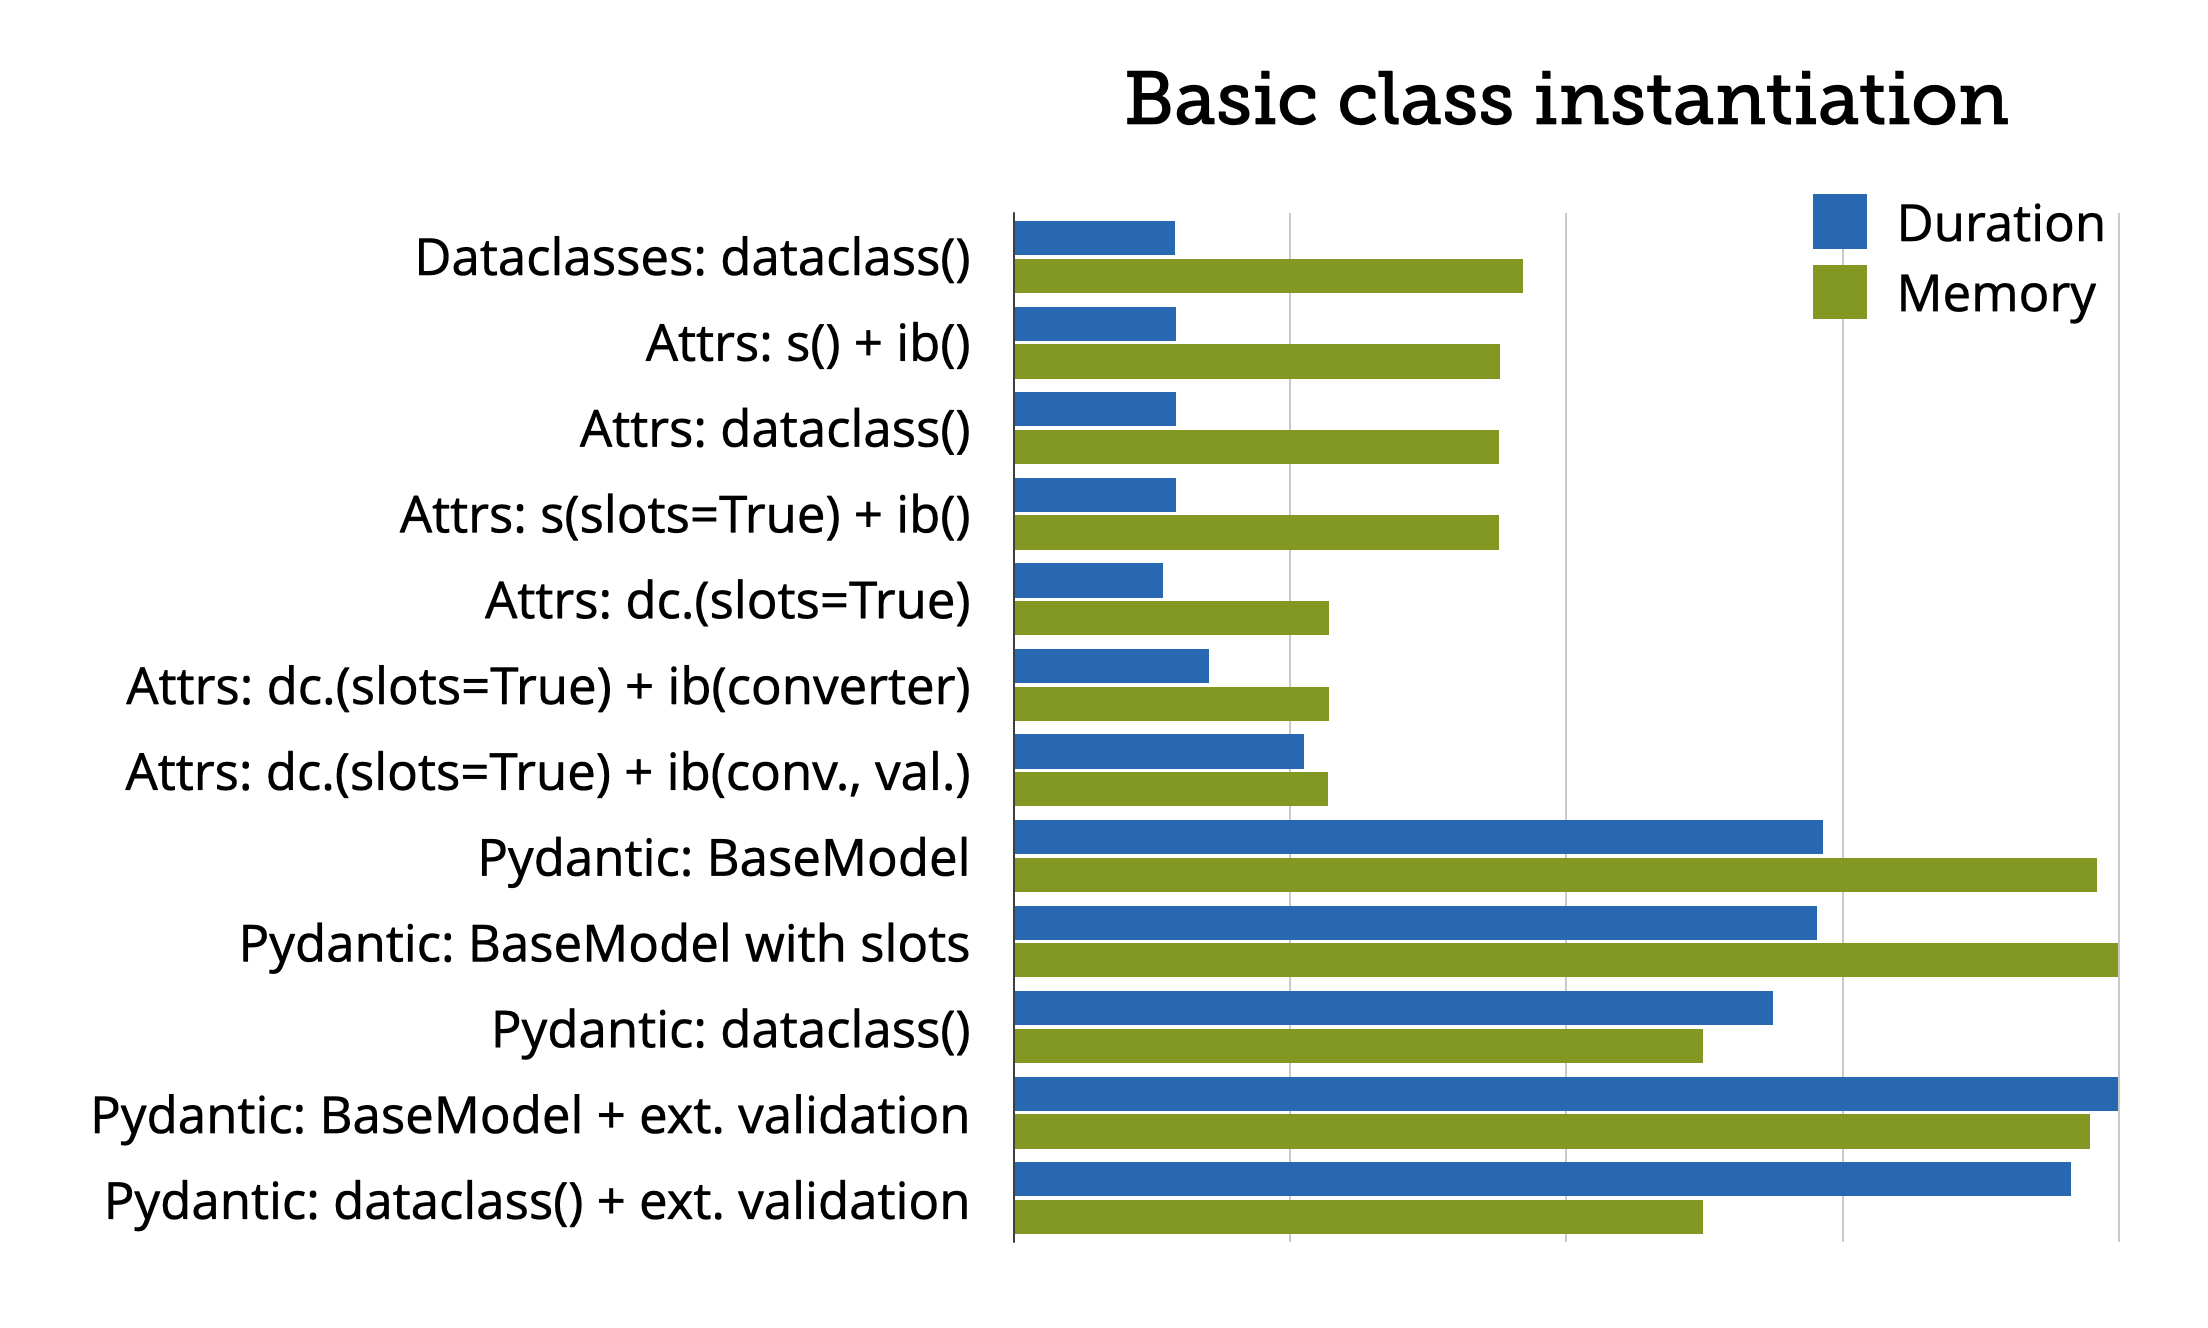 Relative time and memory consumption for basic class instantiation